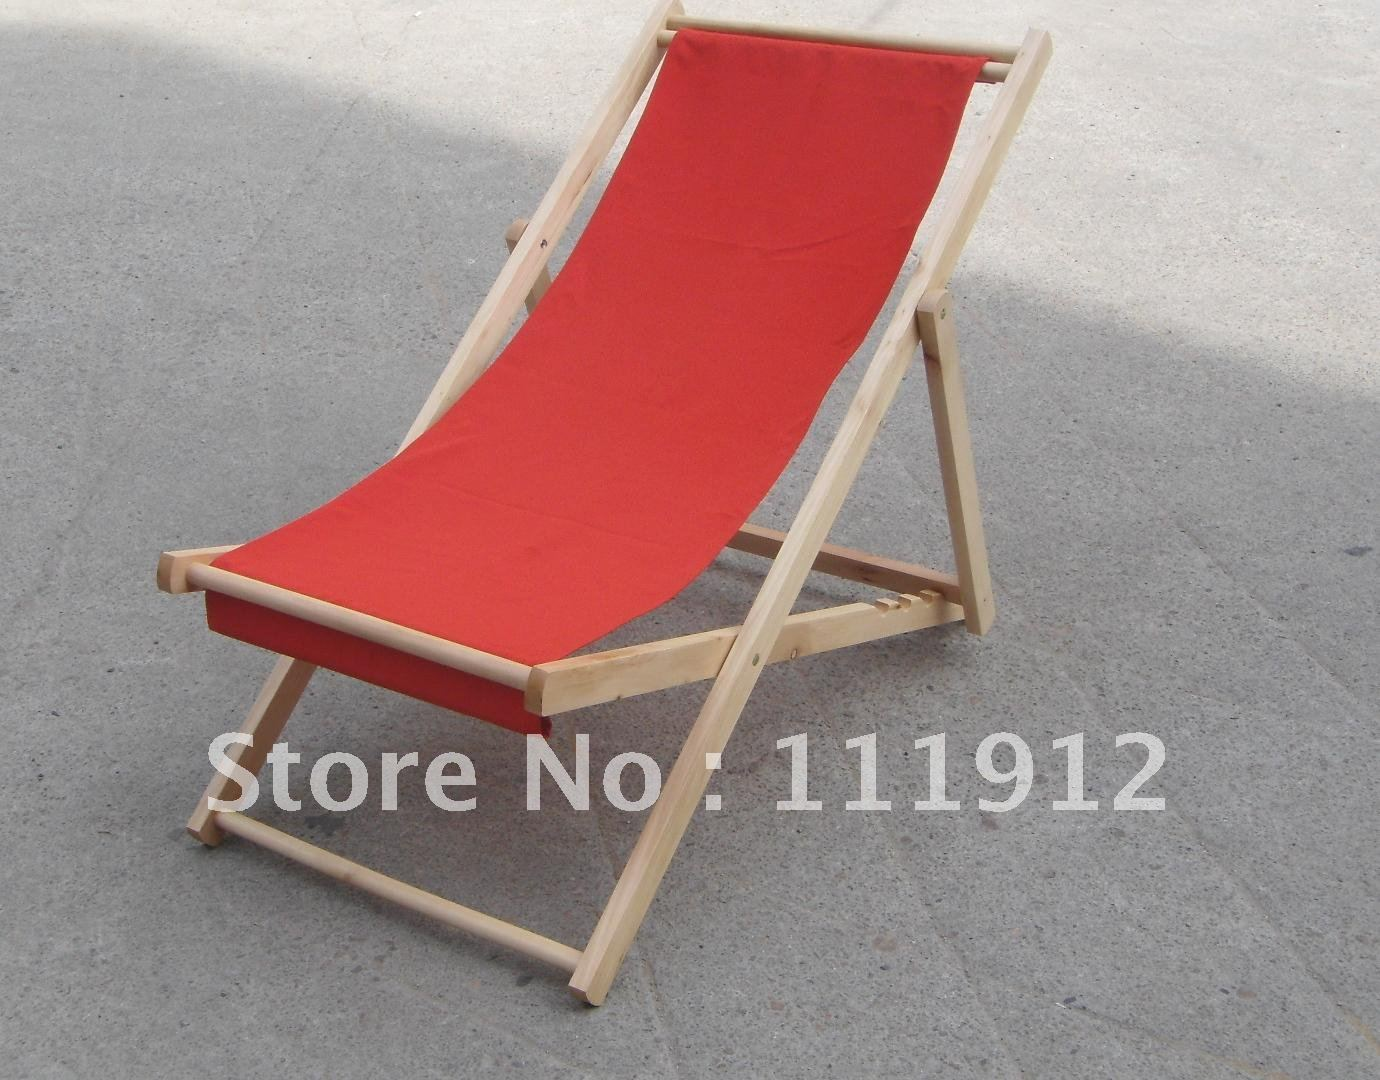 Folding Wooden Chairs Us 29 9 Wood Folding Beach Chair Hardwood Leisure Chair In Beach Chairs From Furniture On Aliexpress Alibaba Group